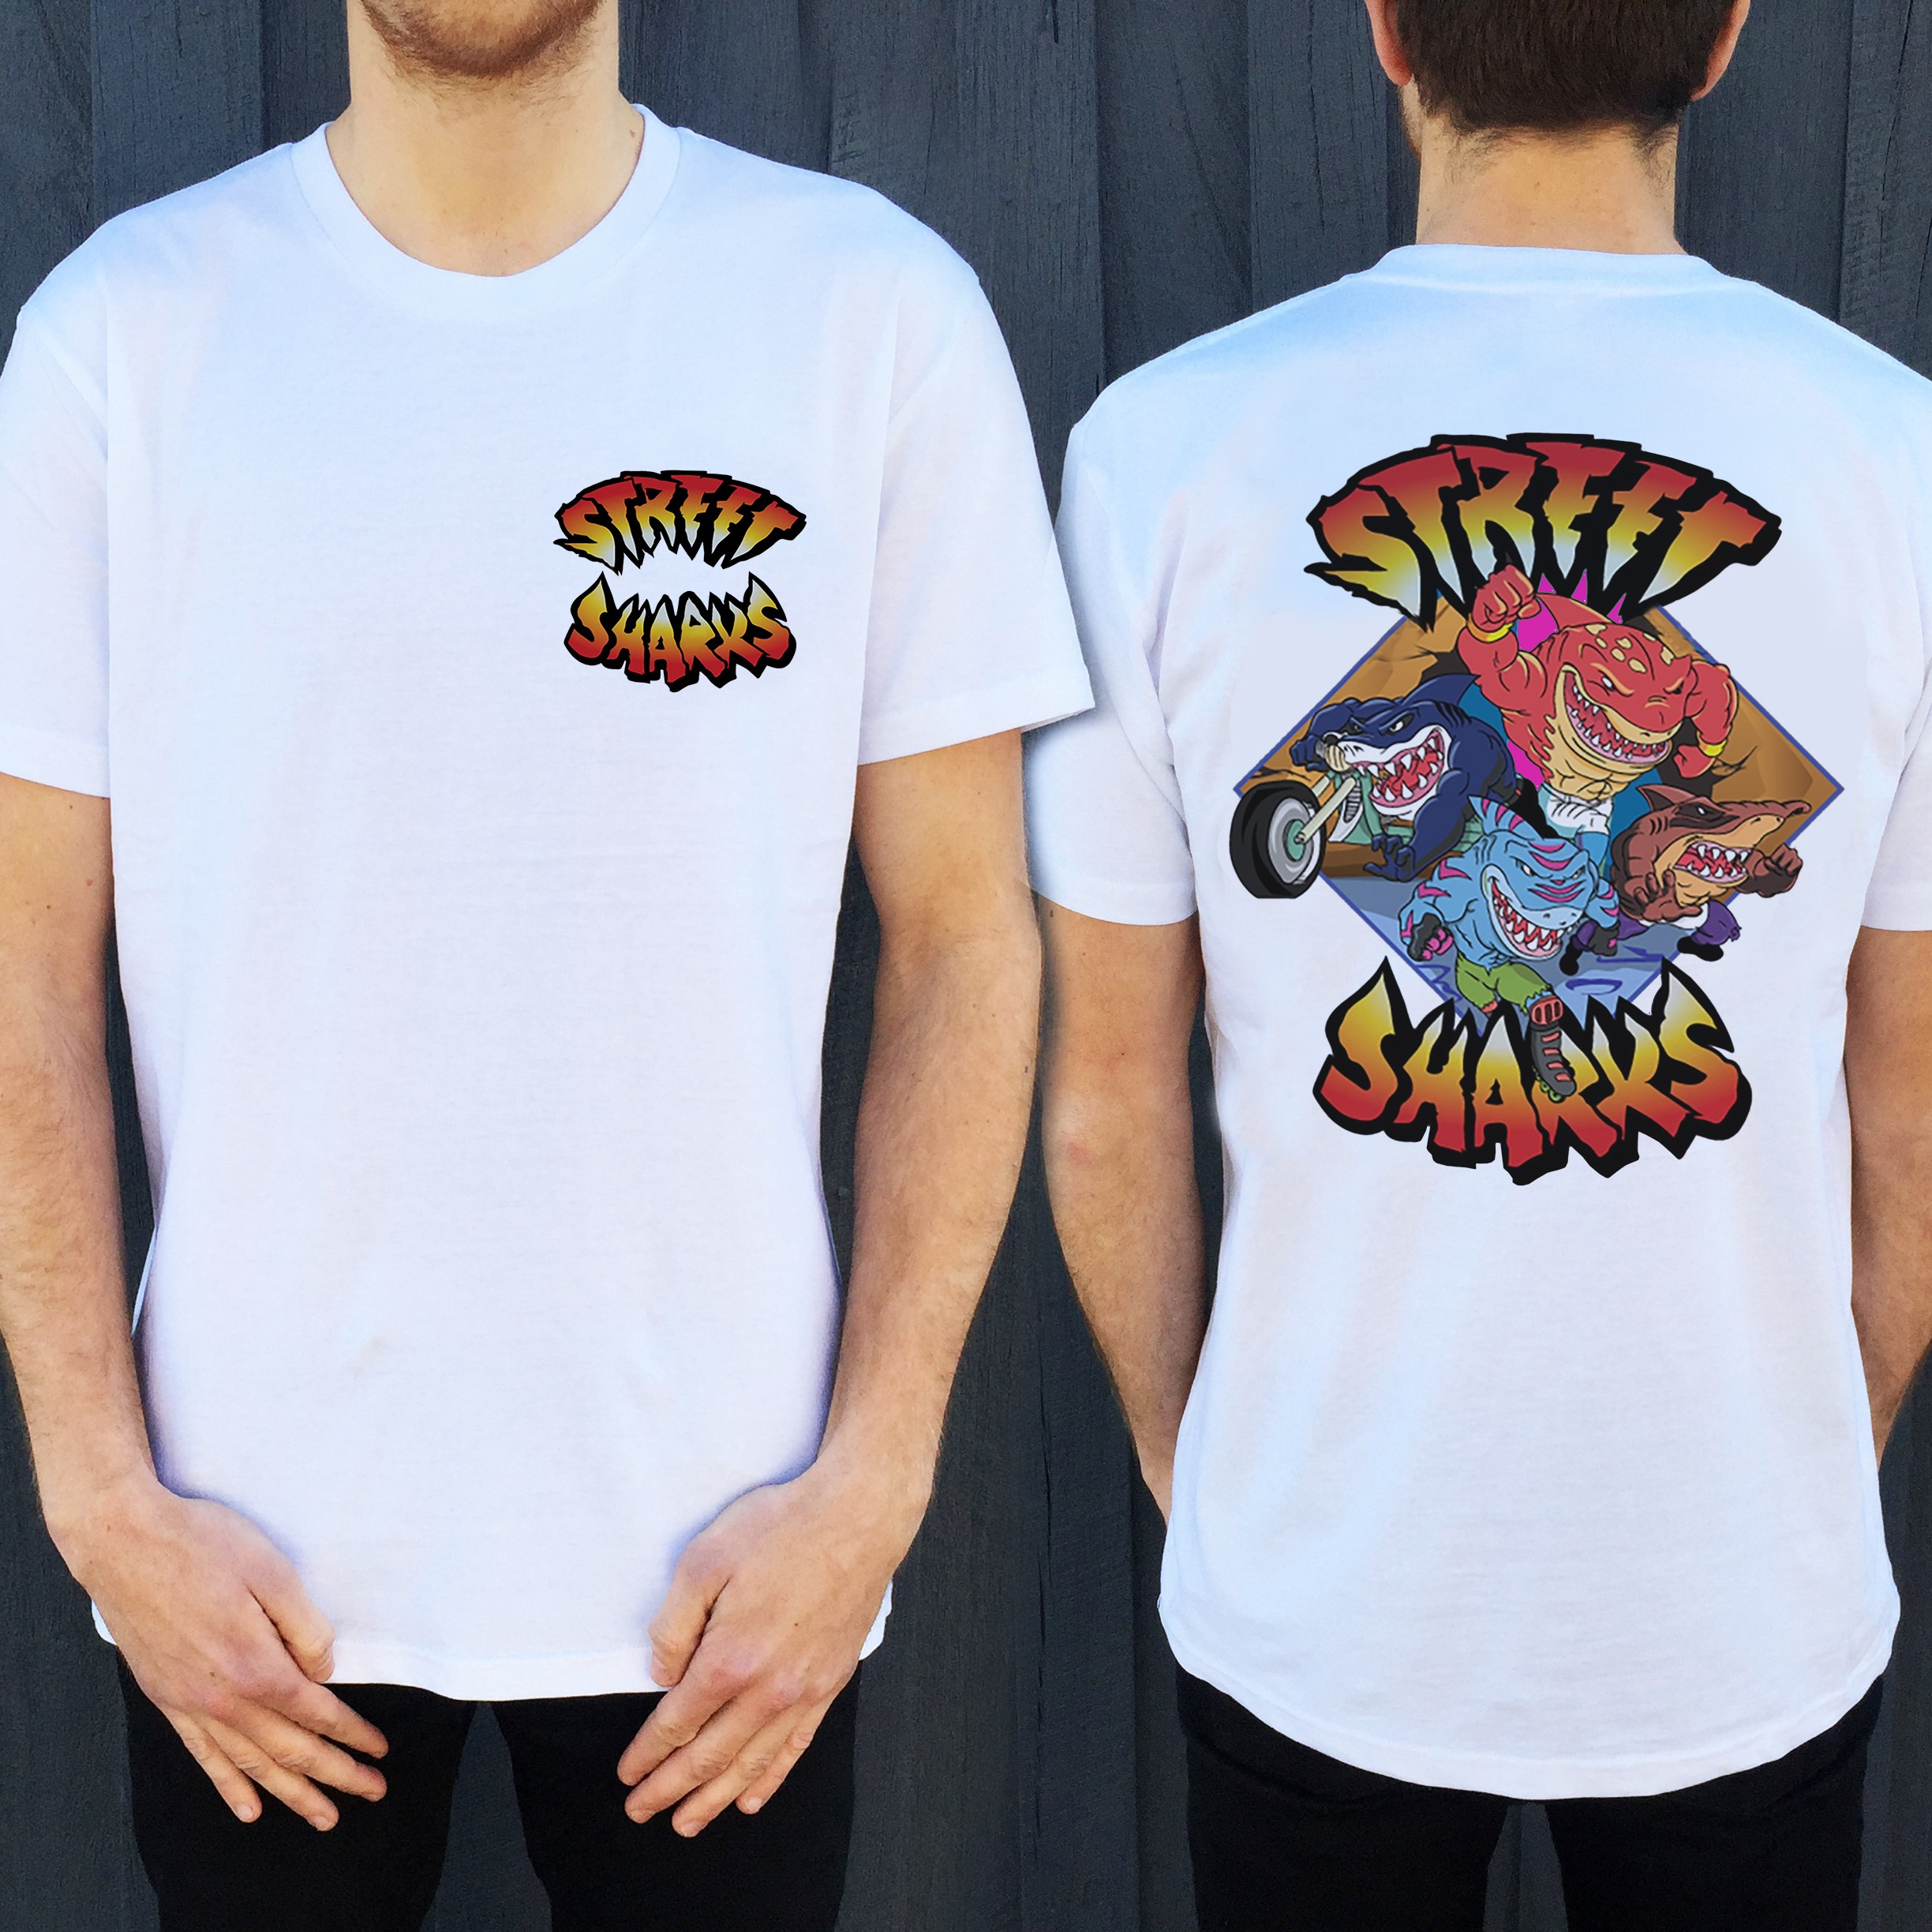 JAWSOME FRONT AND BACK TEE